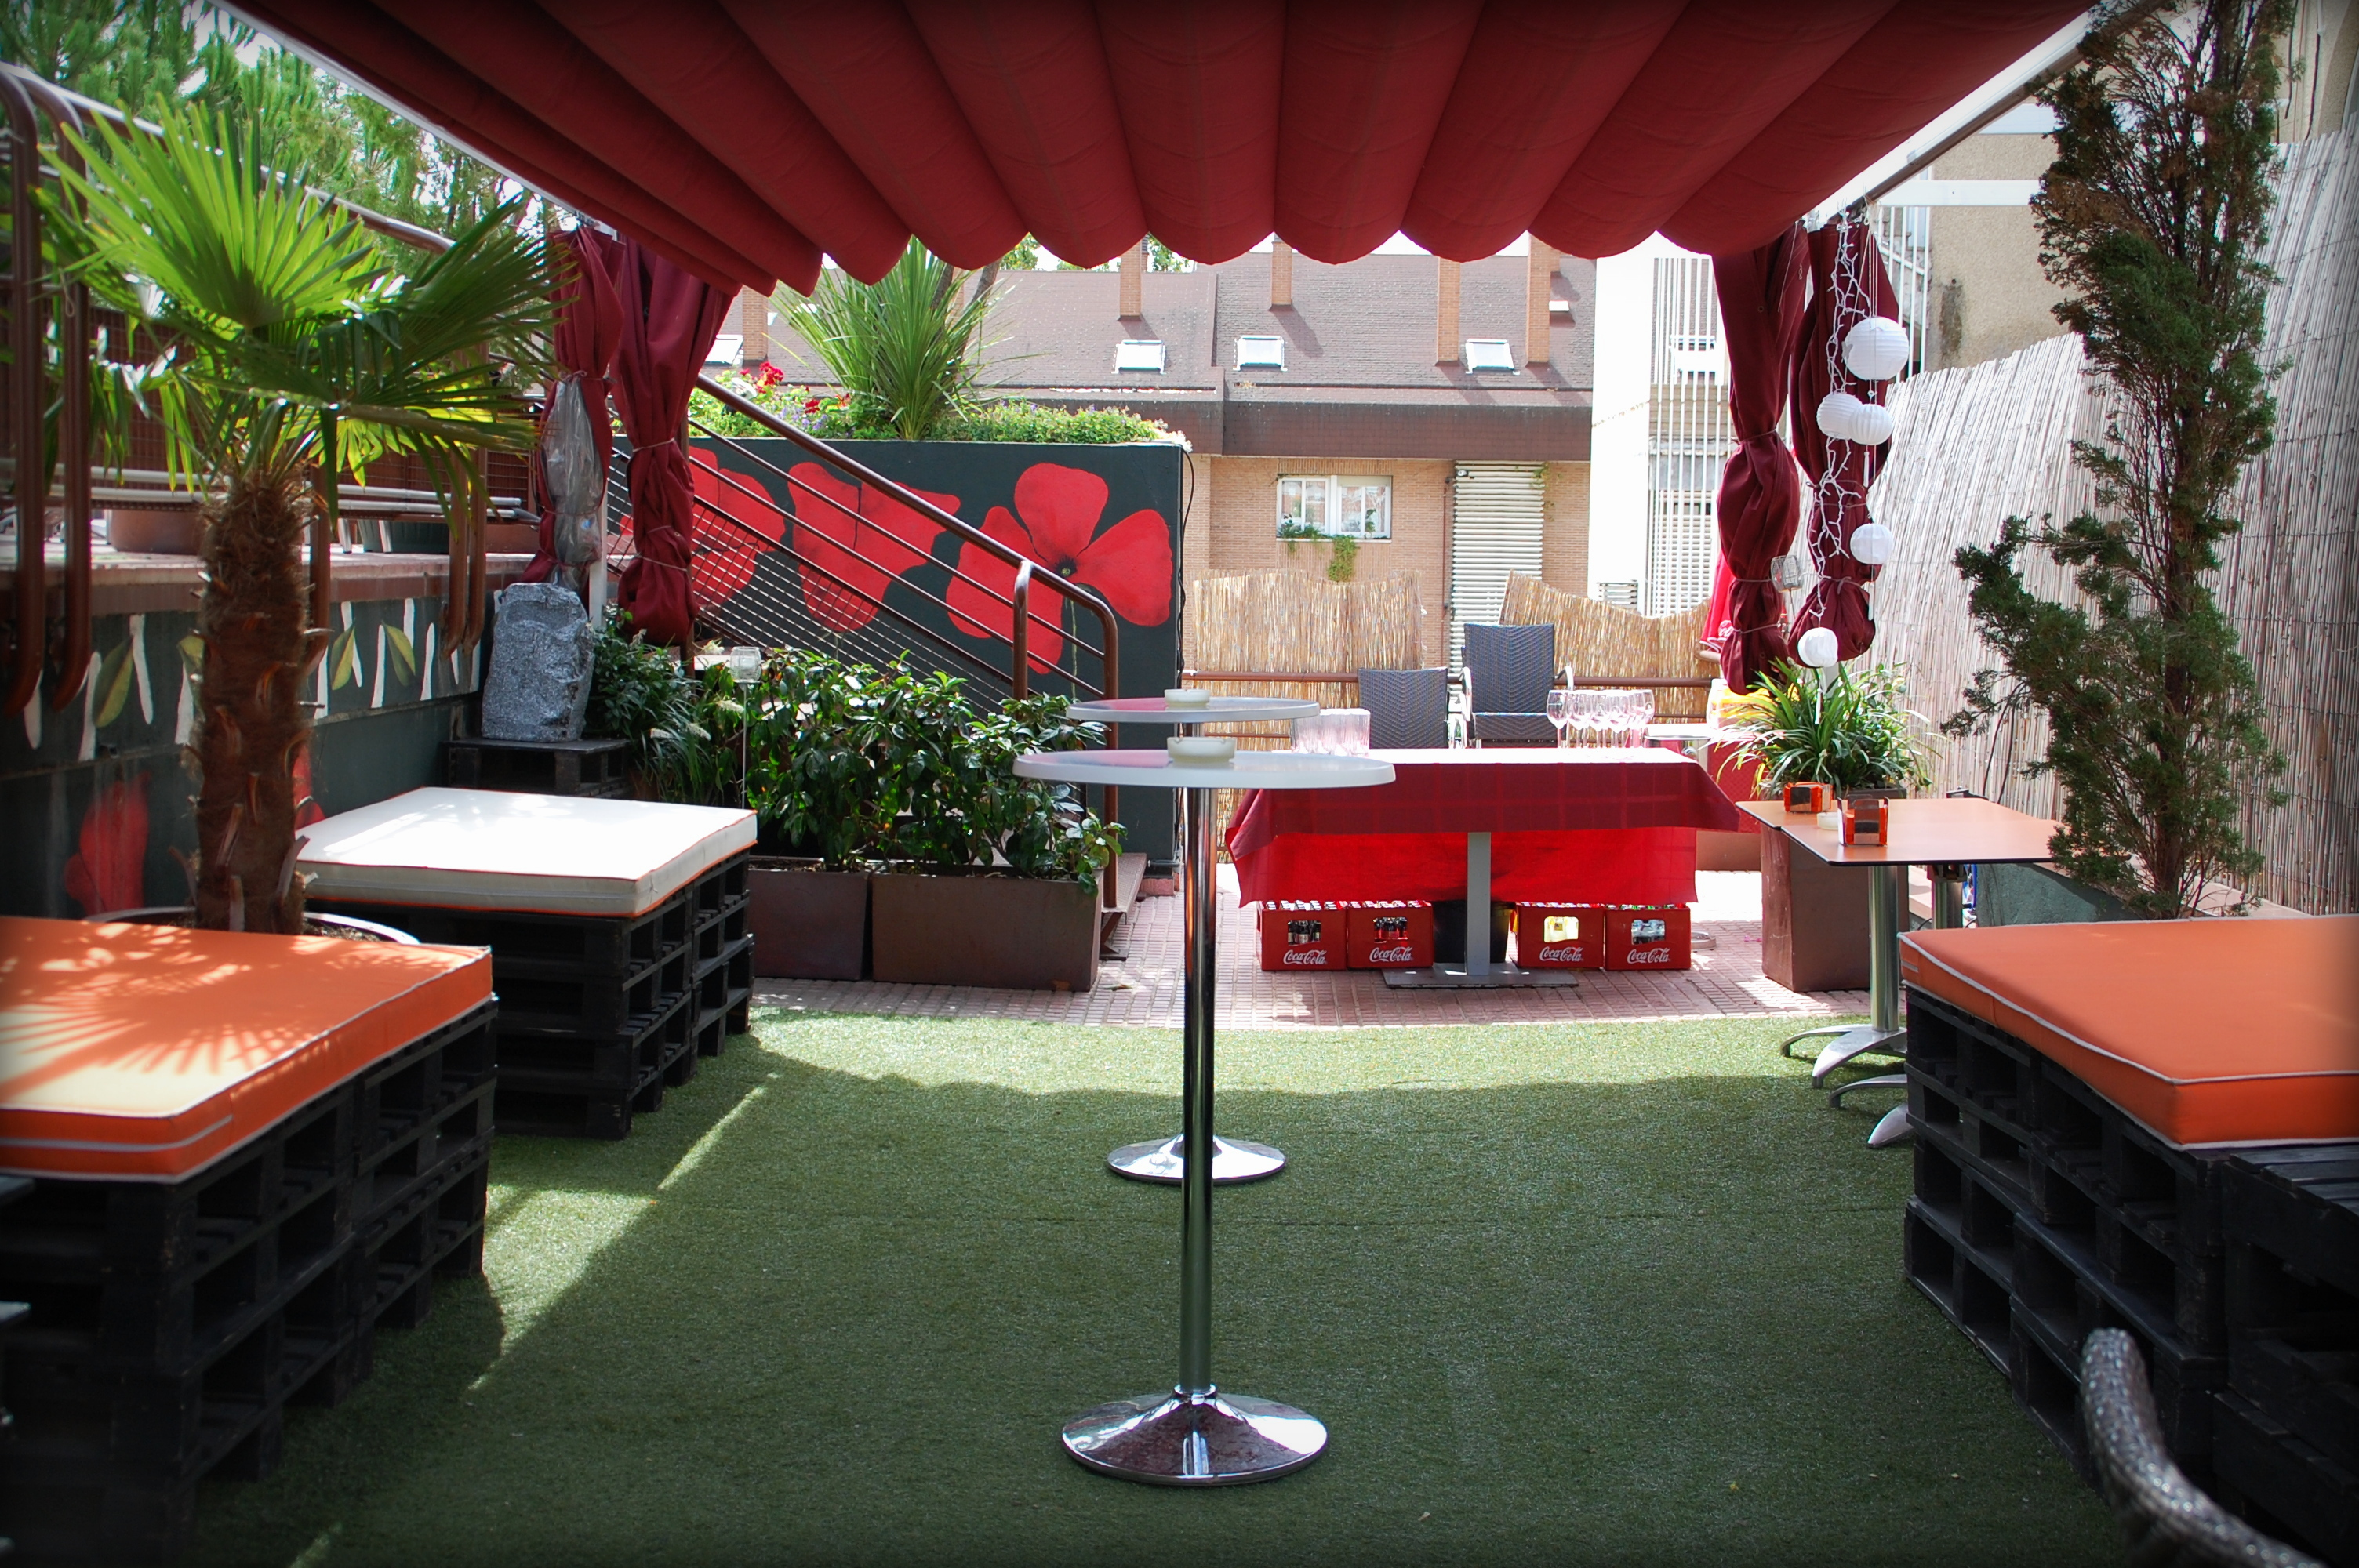 La alternativa las rozas restaurante bar de copas for Terraza chill out